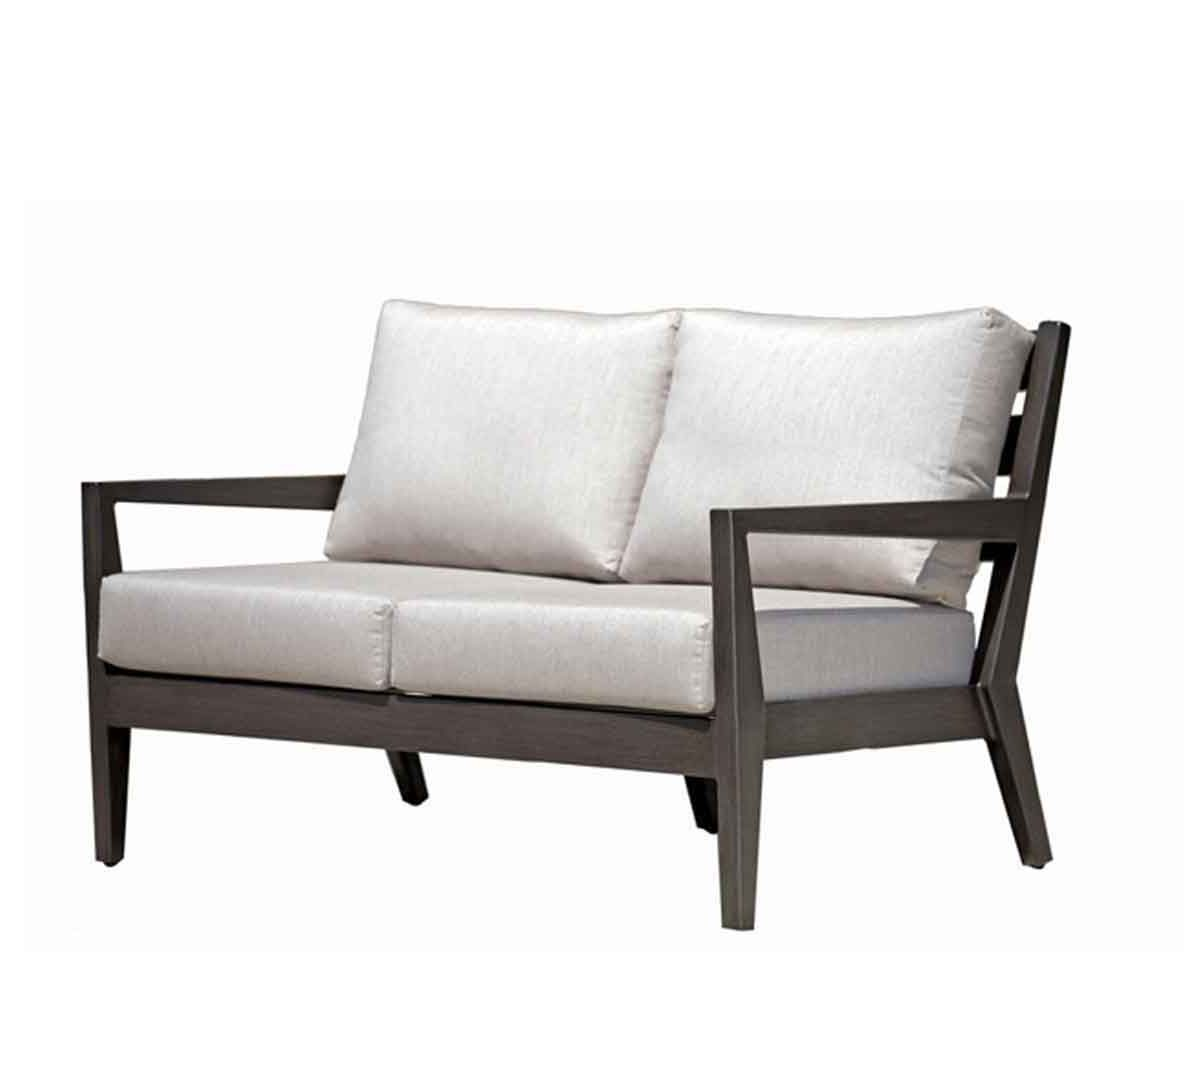 Ratana Lucia love seat in dark metal frame with light grey cushions.